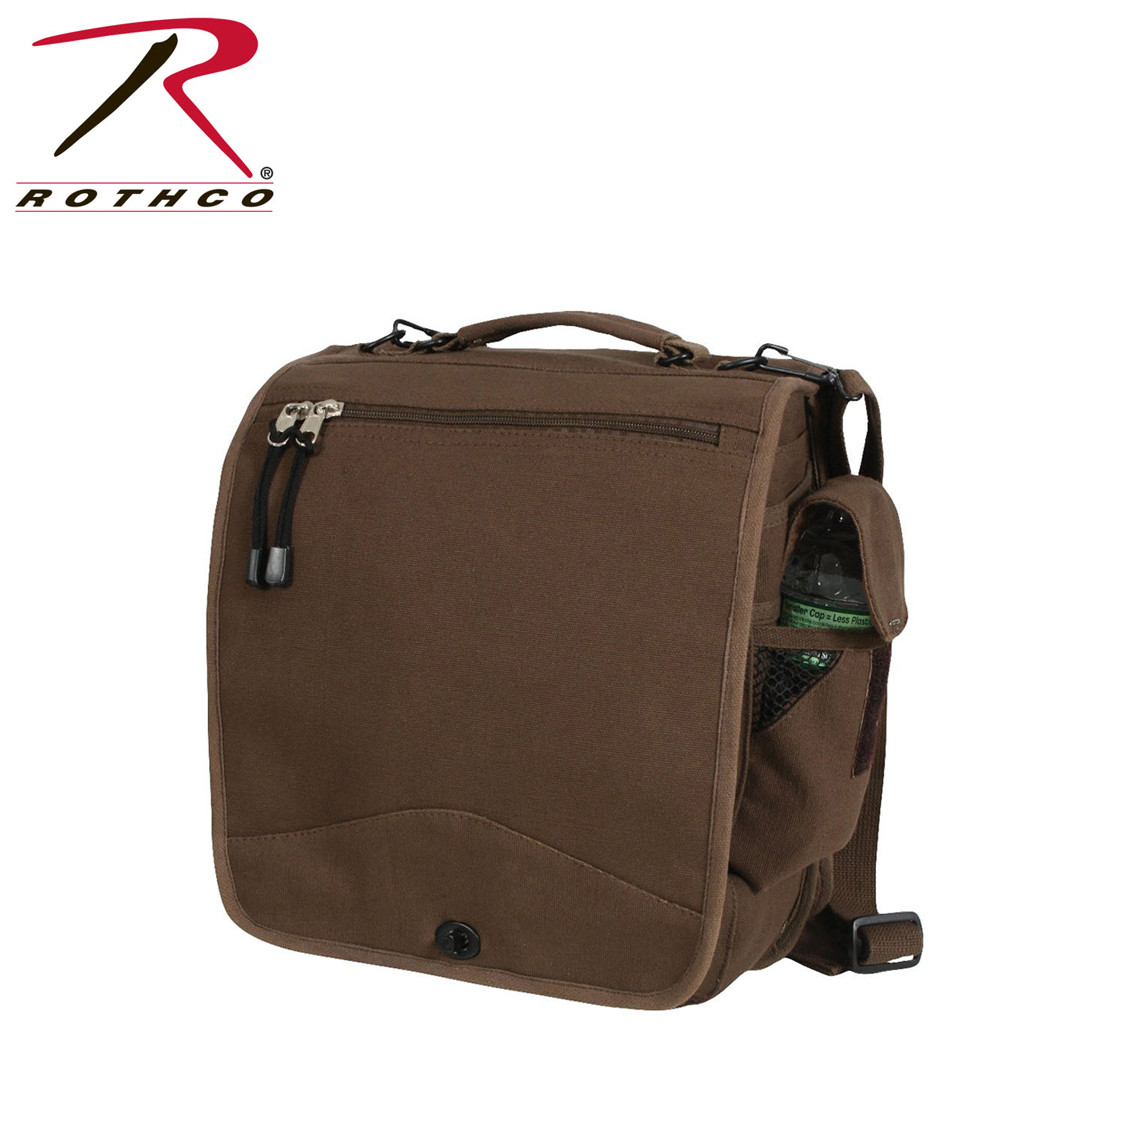 b20fed02ae Shop Brown Canvas M-51 Field Engineers Bags - Fatigues Army Navy Gear Bags